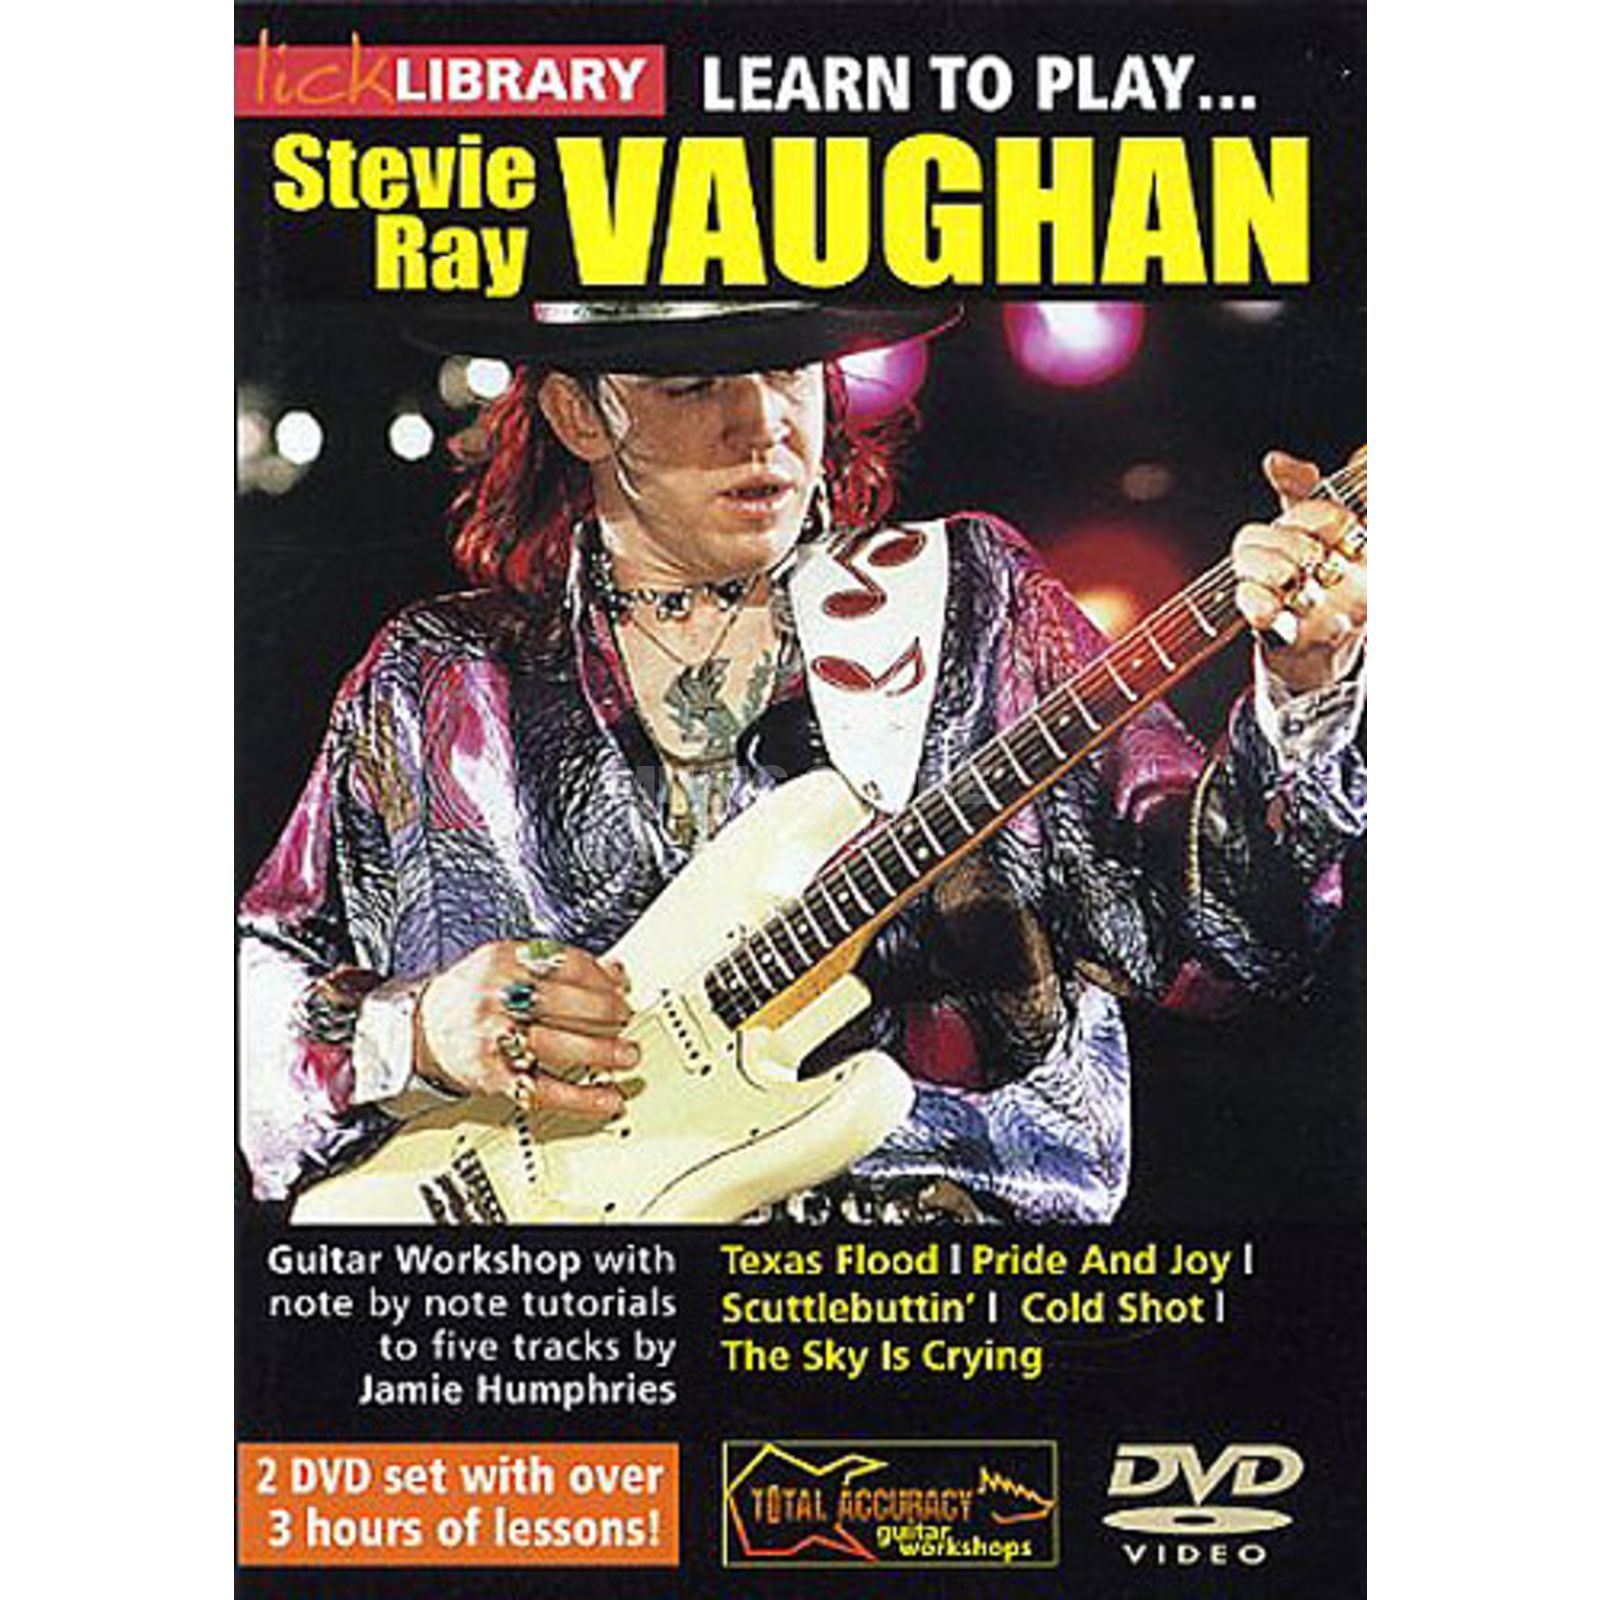 Roadrock International Lick Library: Learn To Play Stevie Ray Vaughan DVD Produktbild